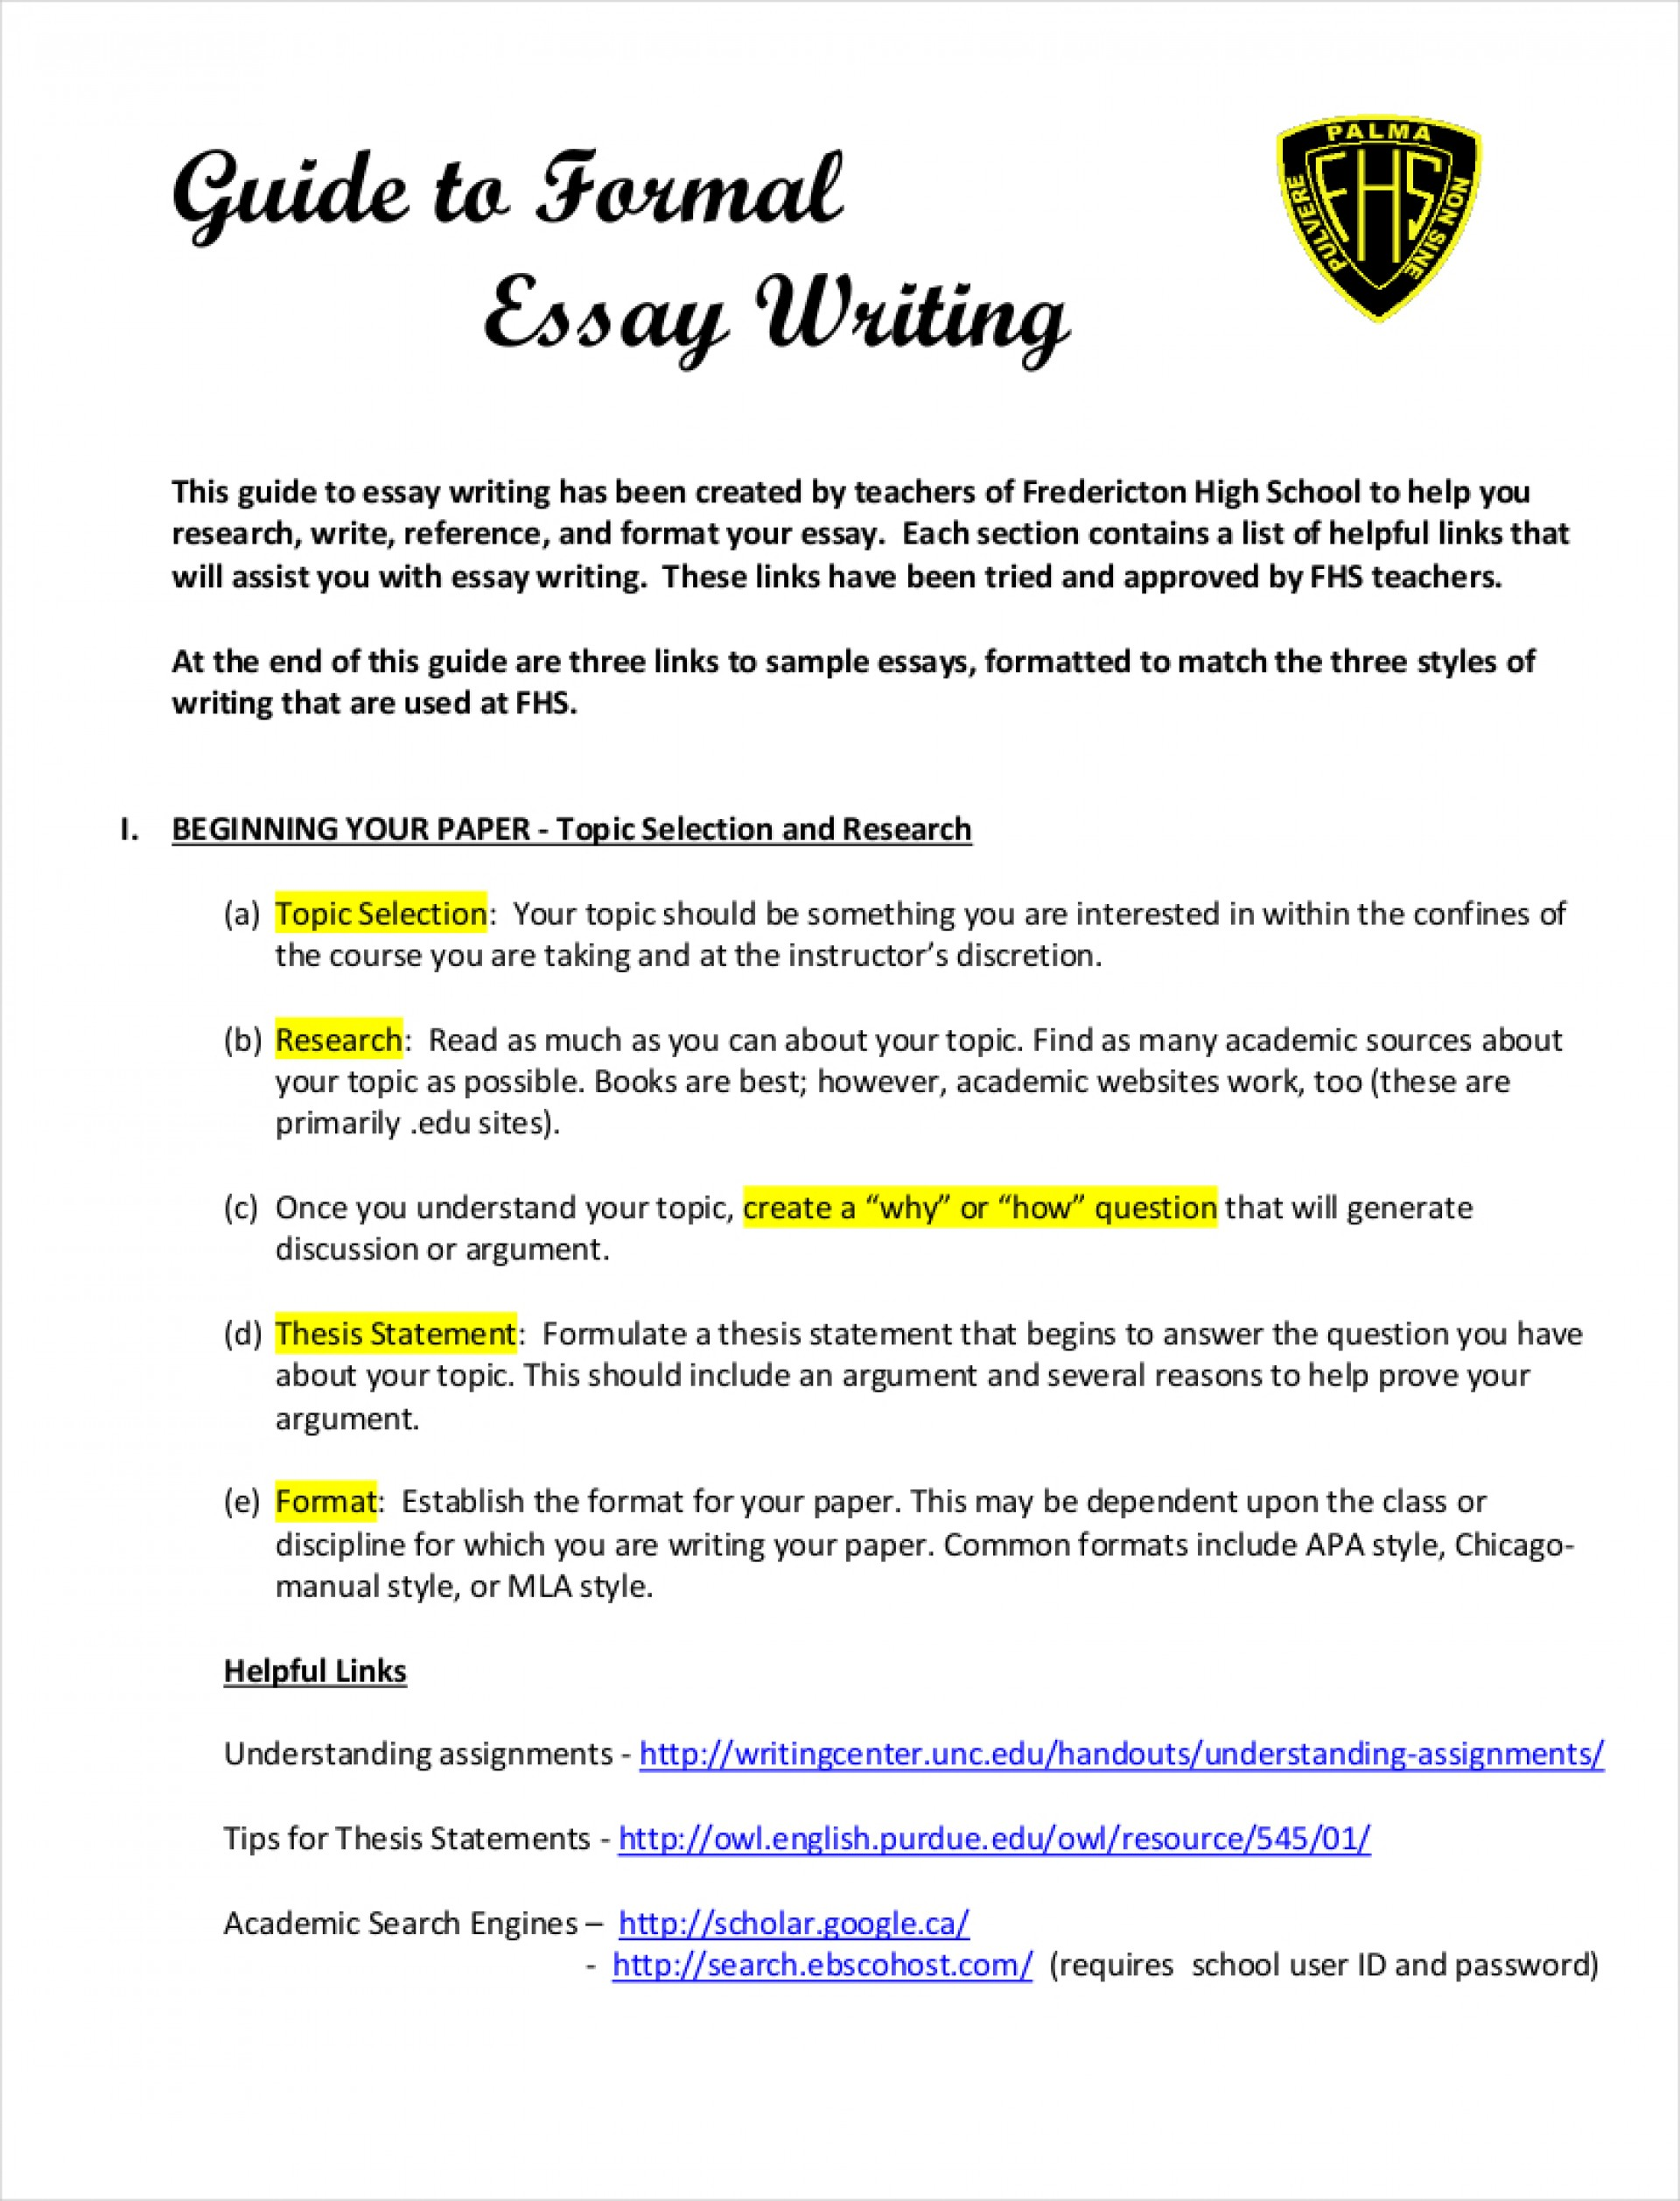 004 Essay Example Samples Of Formal Essays Free Pdf Format Download Writing Styles Sample G Creative Good Comparing Ielts On Analysis English Persuasive Unforgettable In Tamil College Guidelines 1920